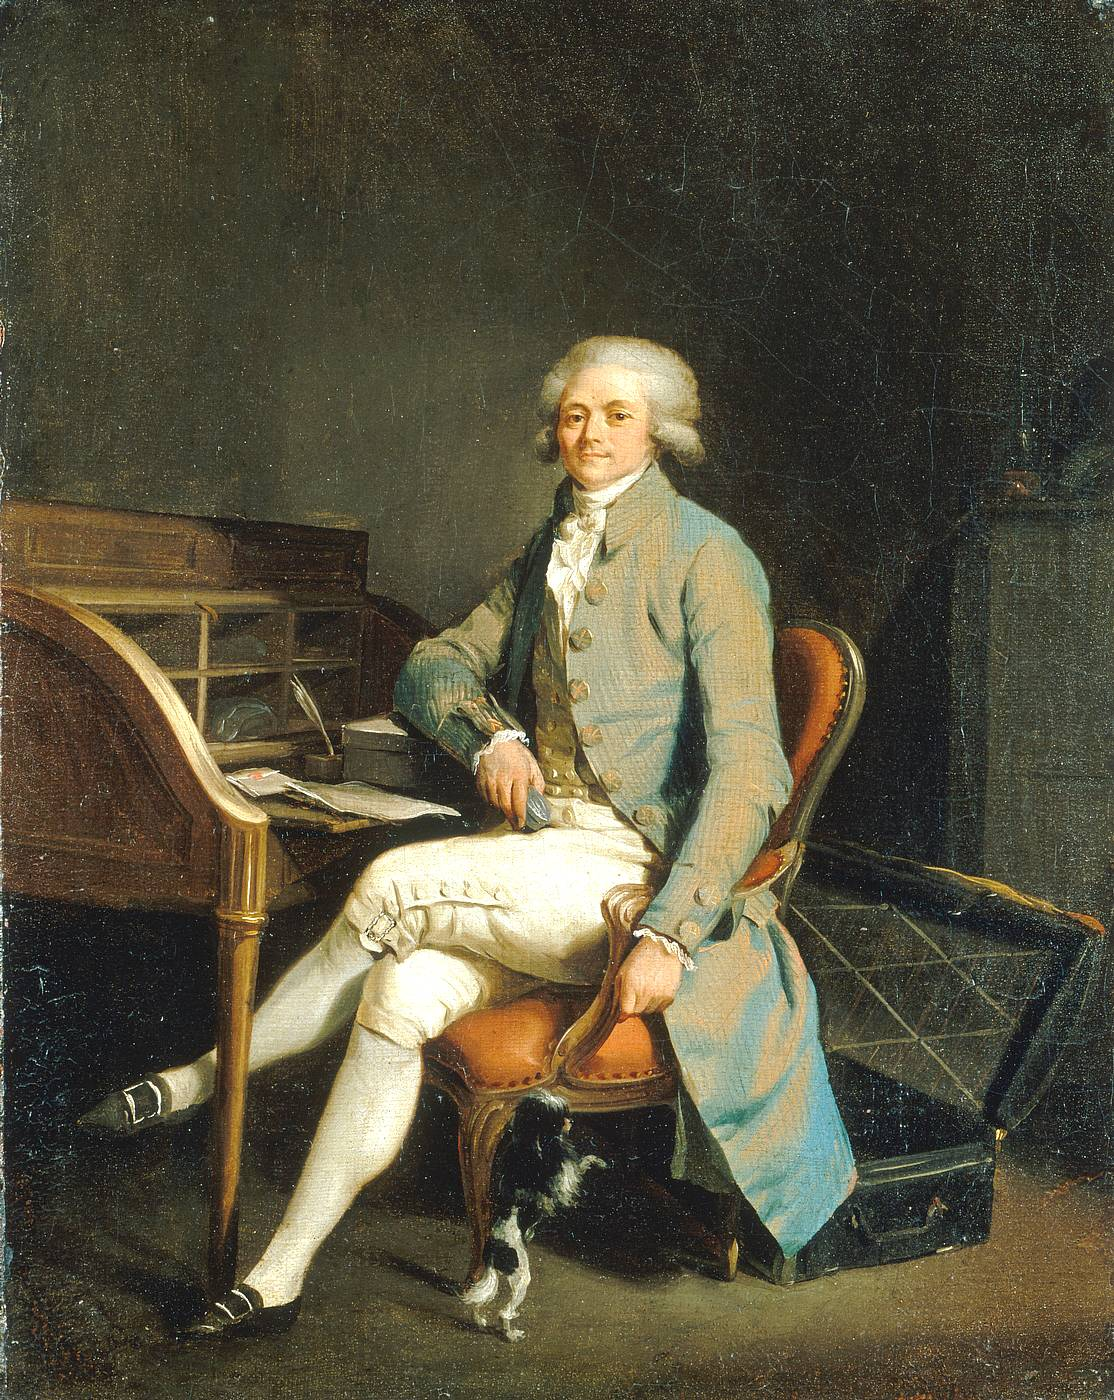 TheFrenchRevolution11 - Maximilien Robespierre